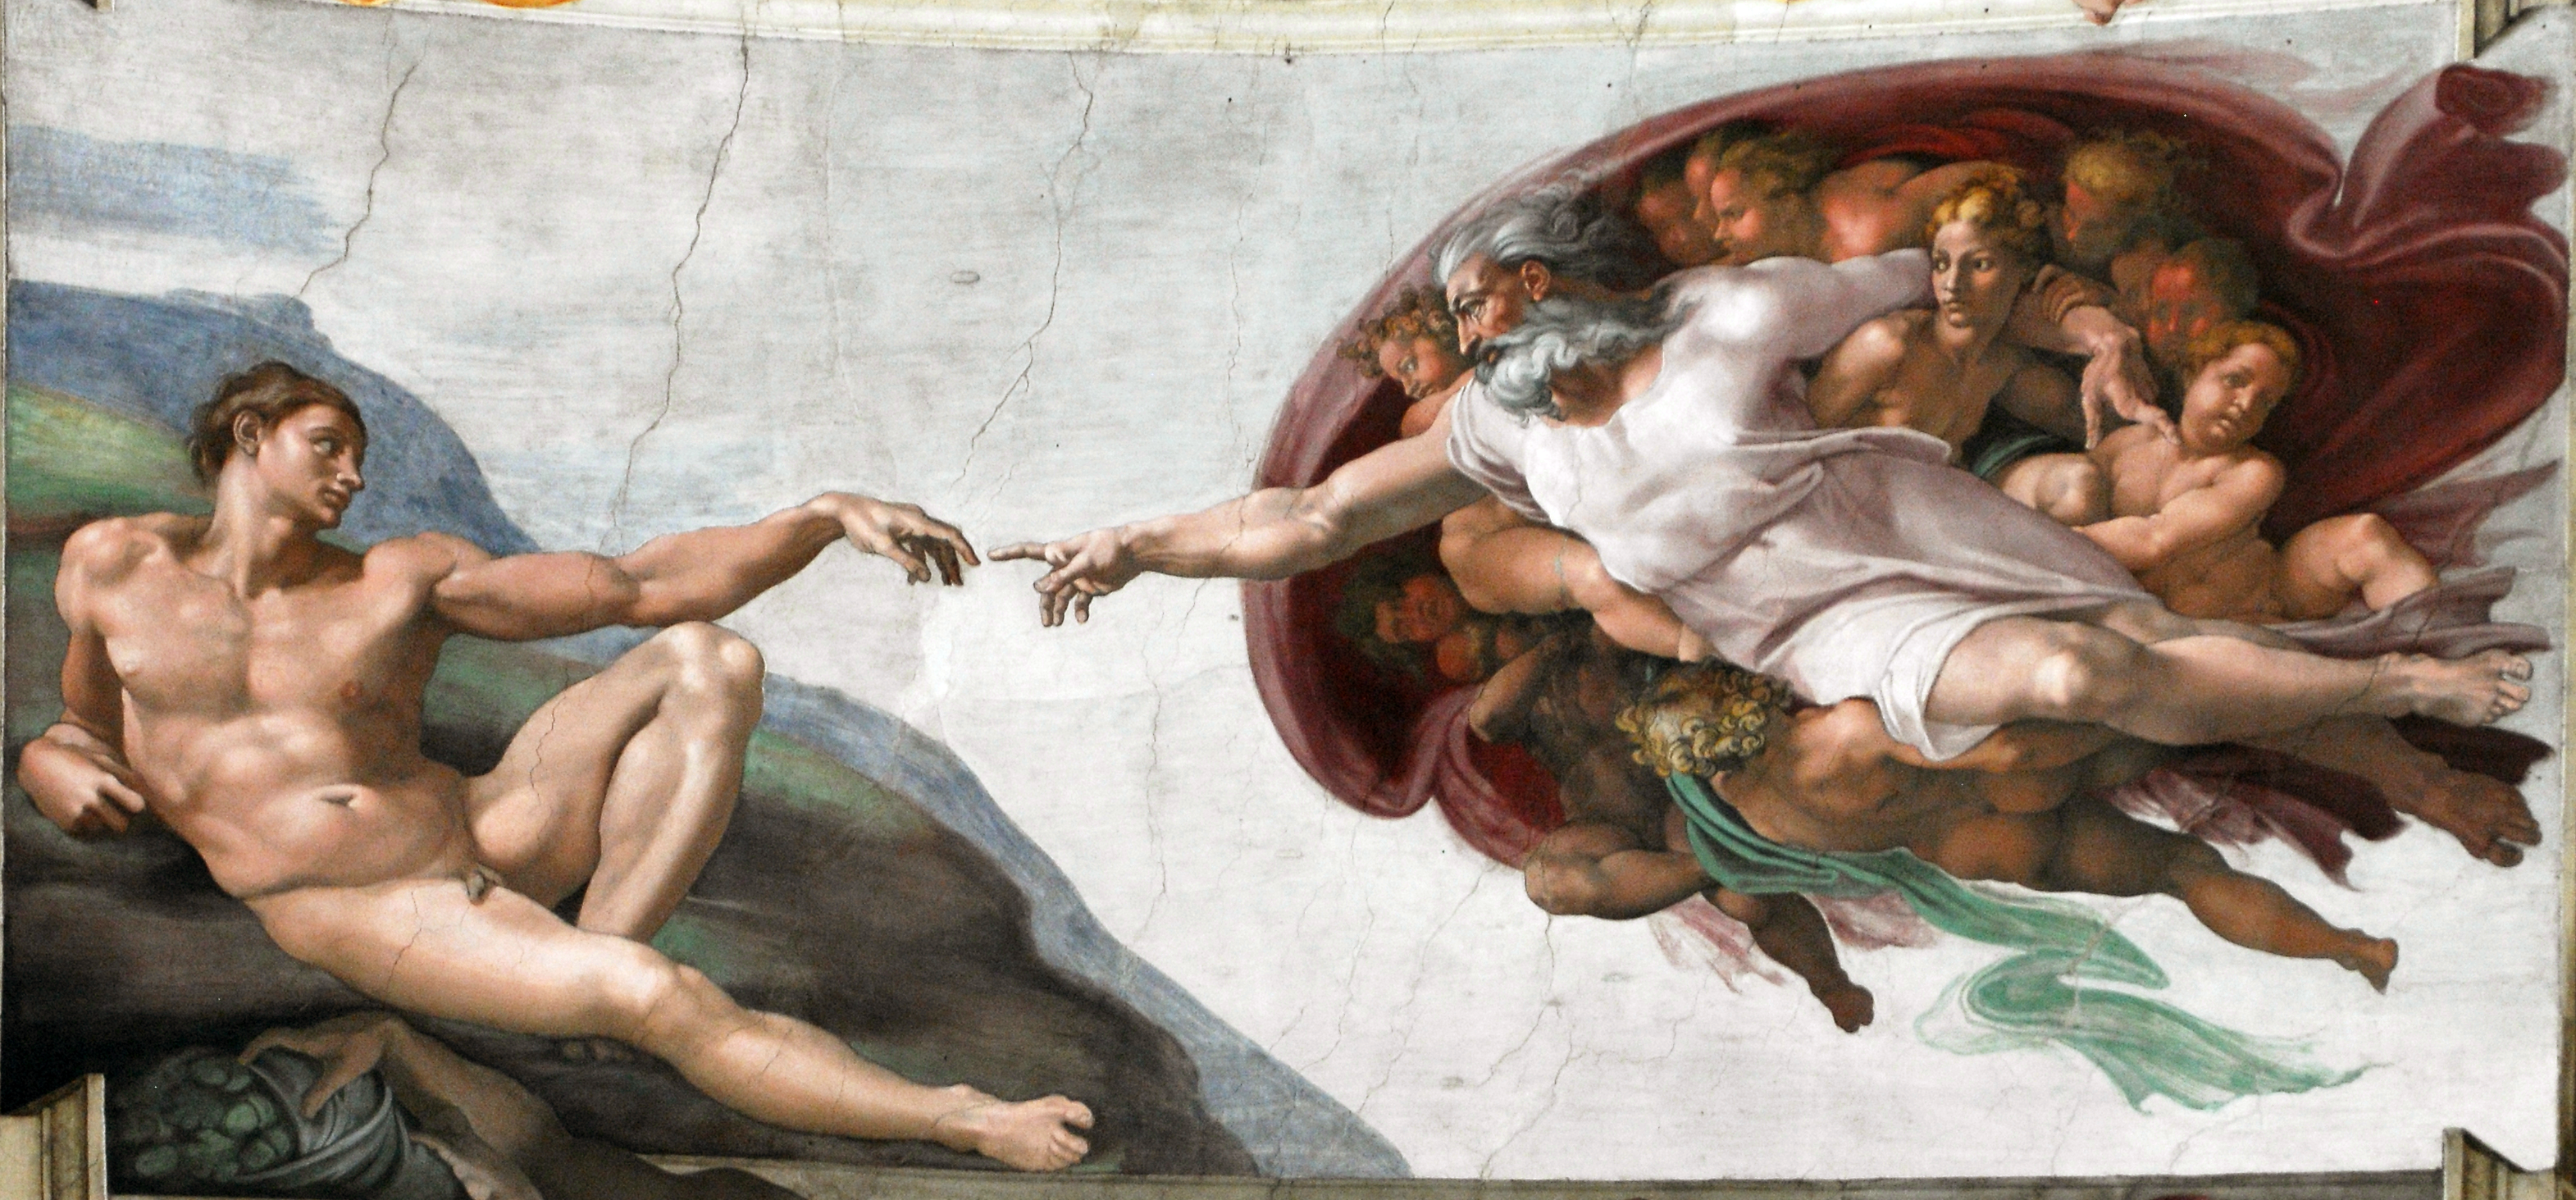 http://upload.wikimedia.org/wikipedia/commons/7/73/God2-Sistine_Chapel.png